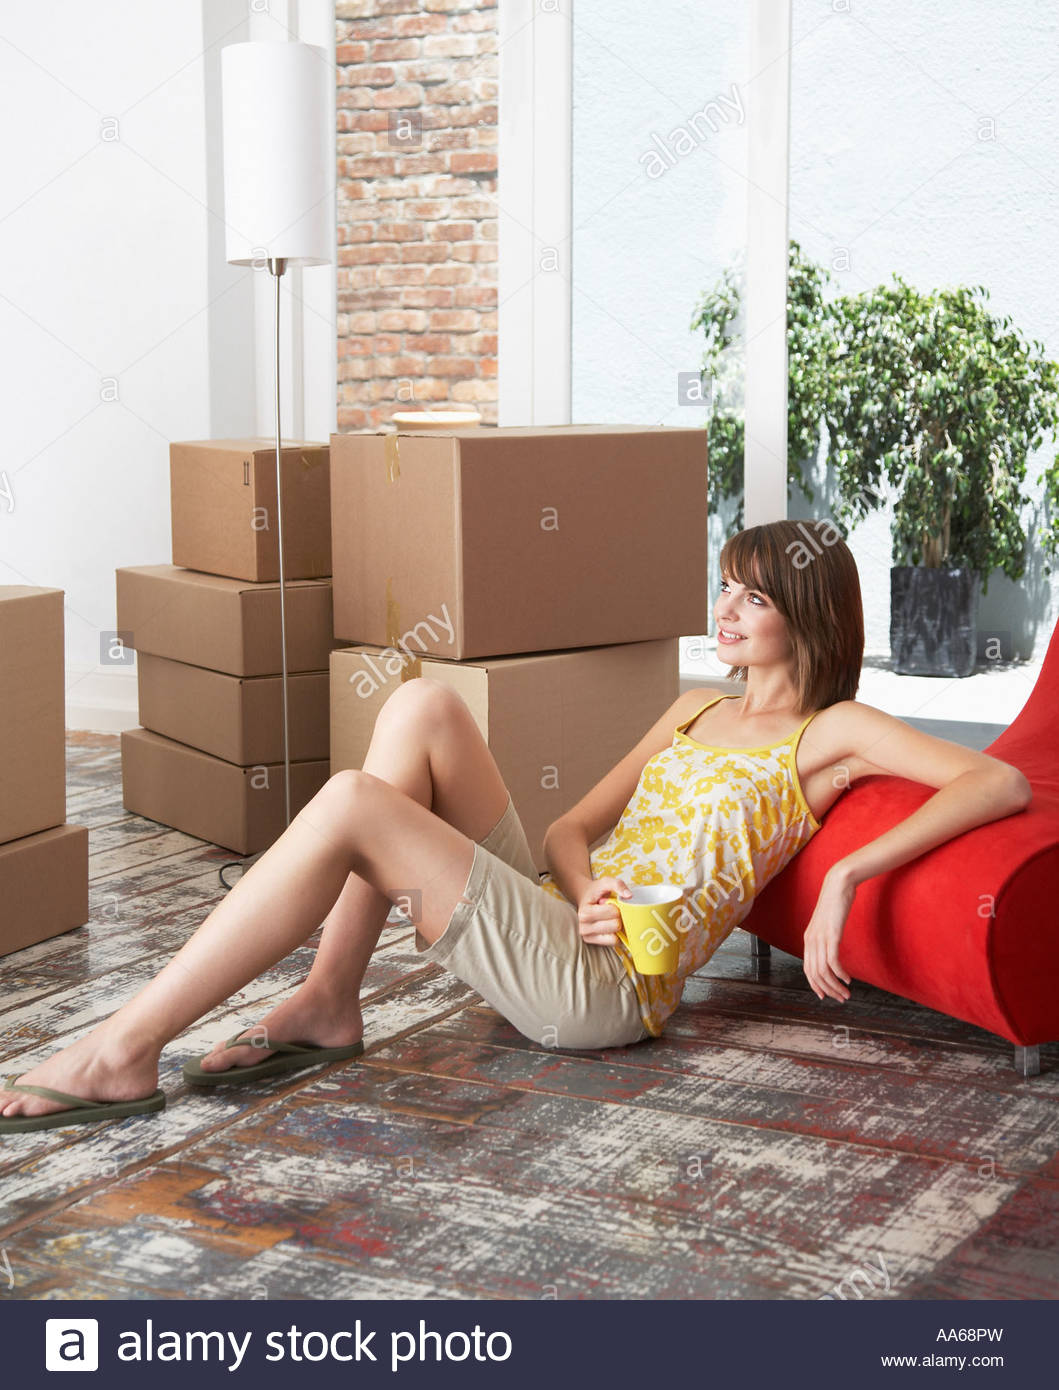 Woman sitting on hardwood floor with mug and cardboard boxes smiling - Stock Image